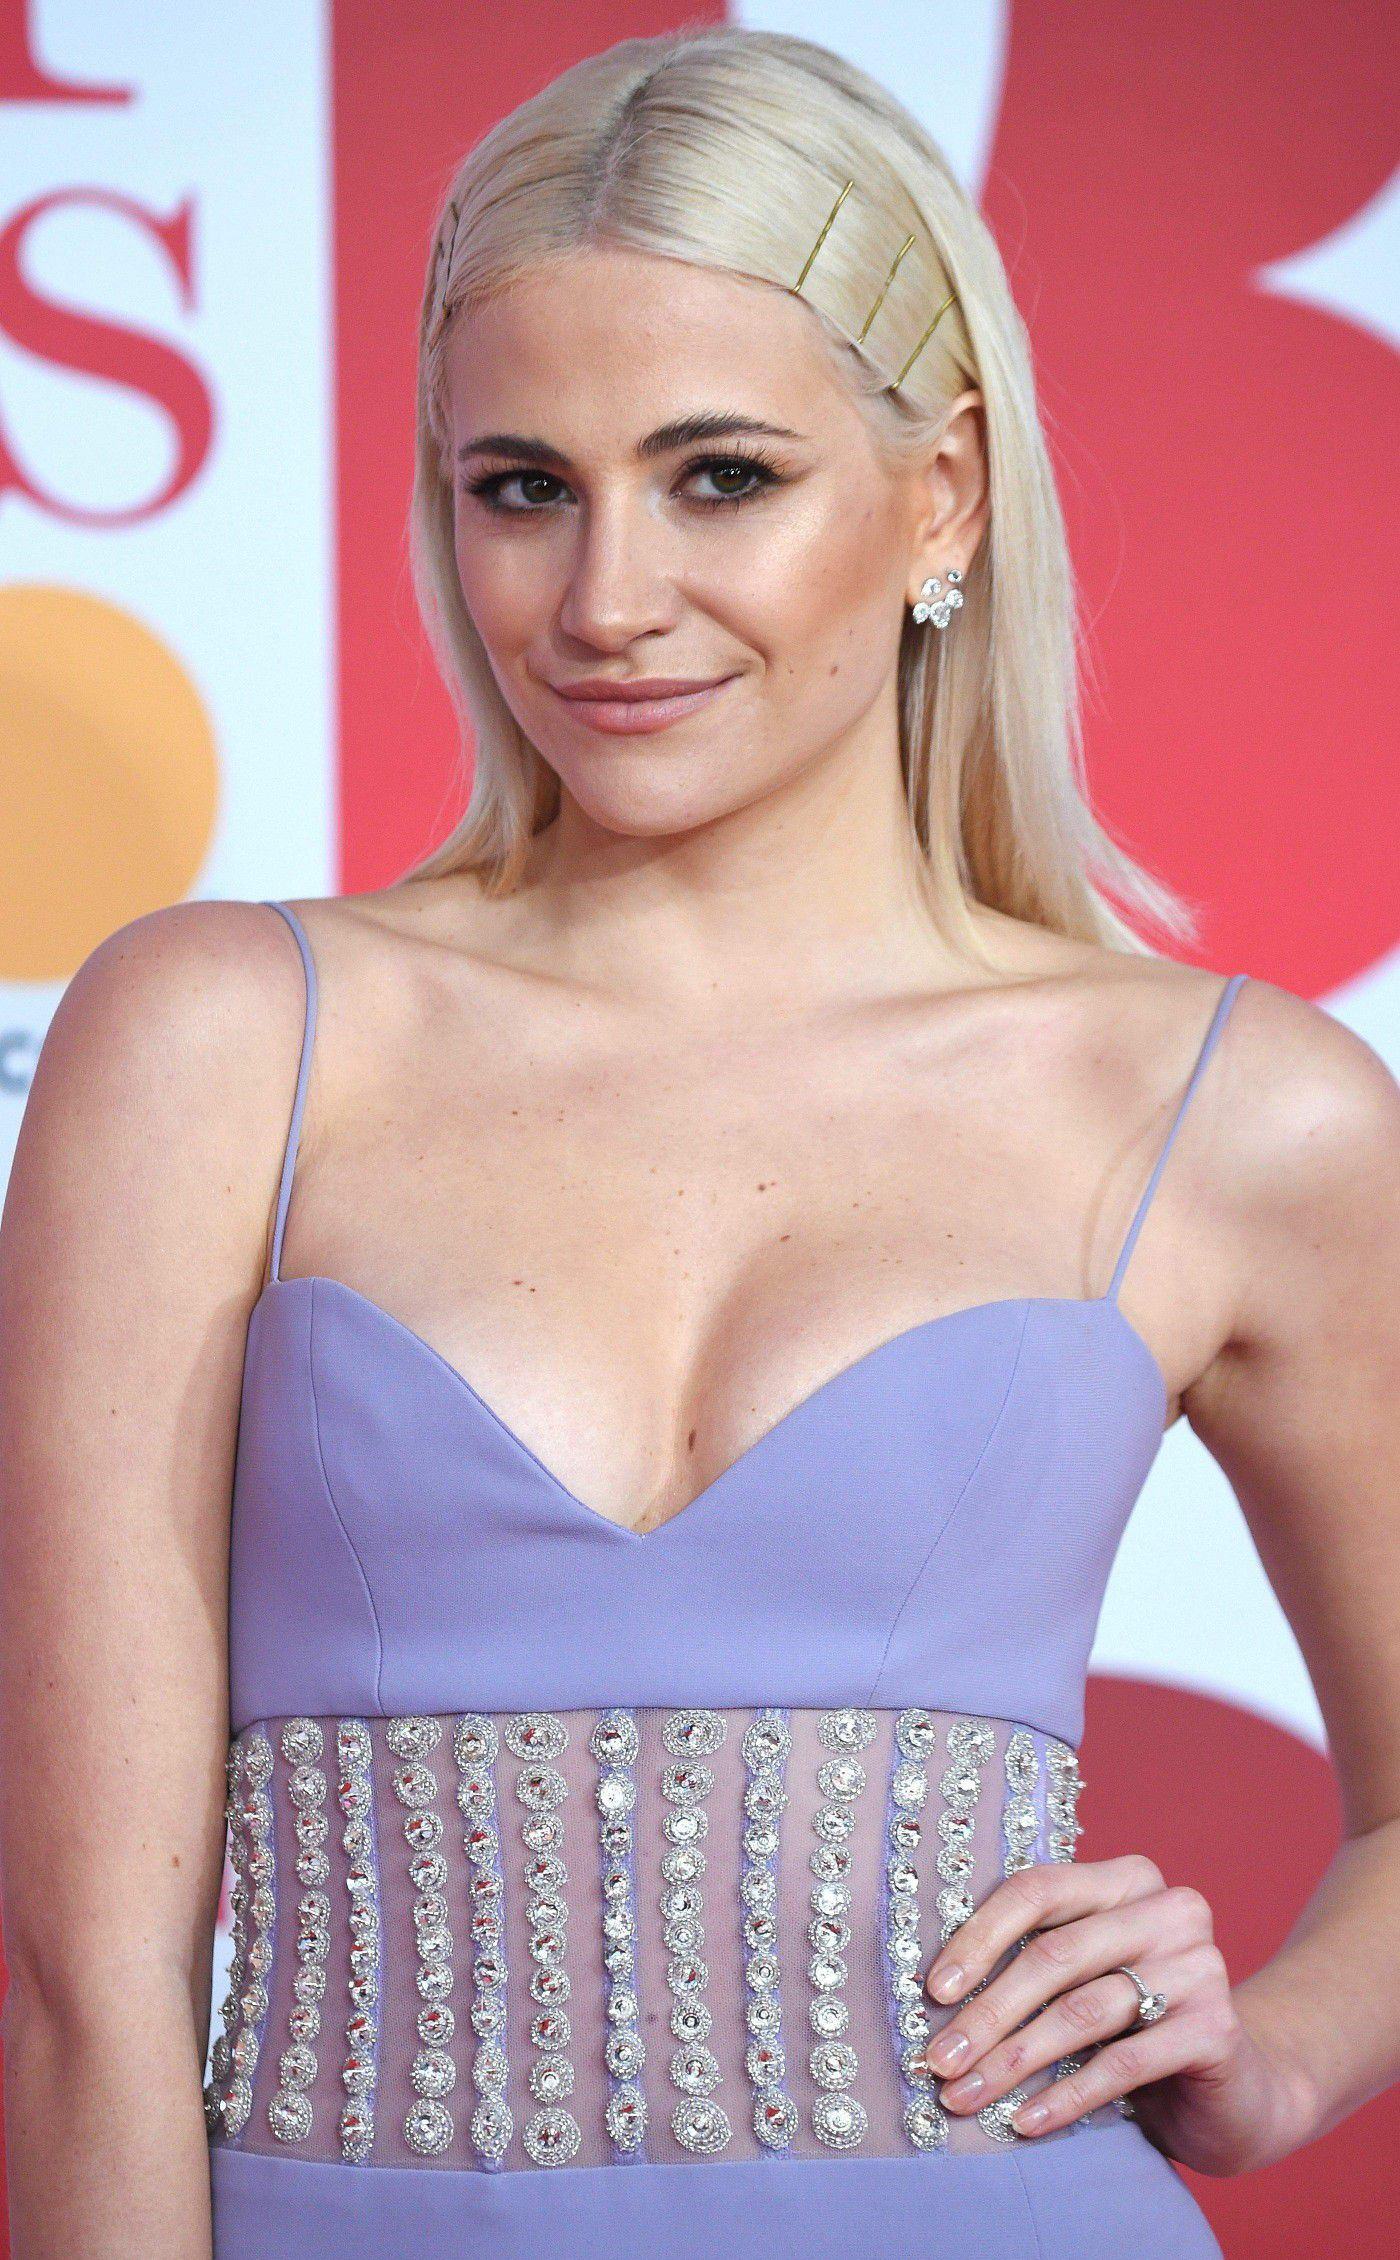 pixie-lott-panty-upskirt-at-the-38th-brit-awards-in-london-6109